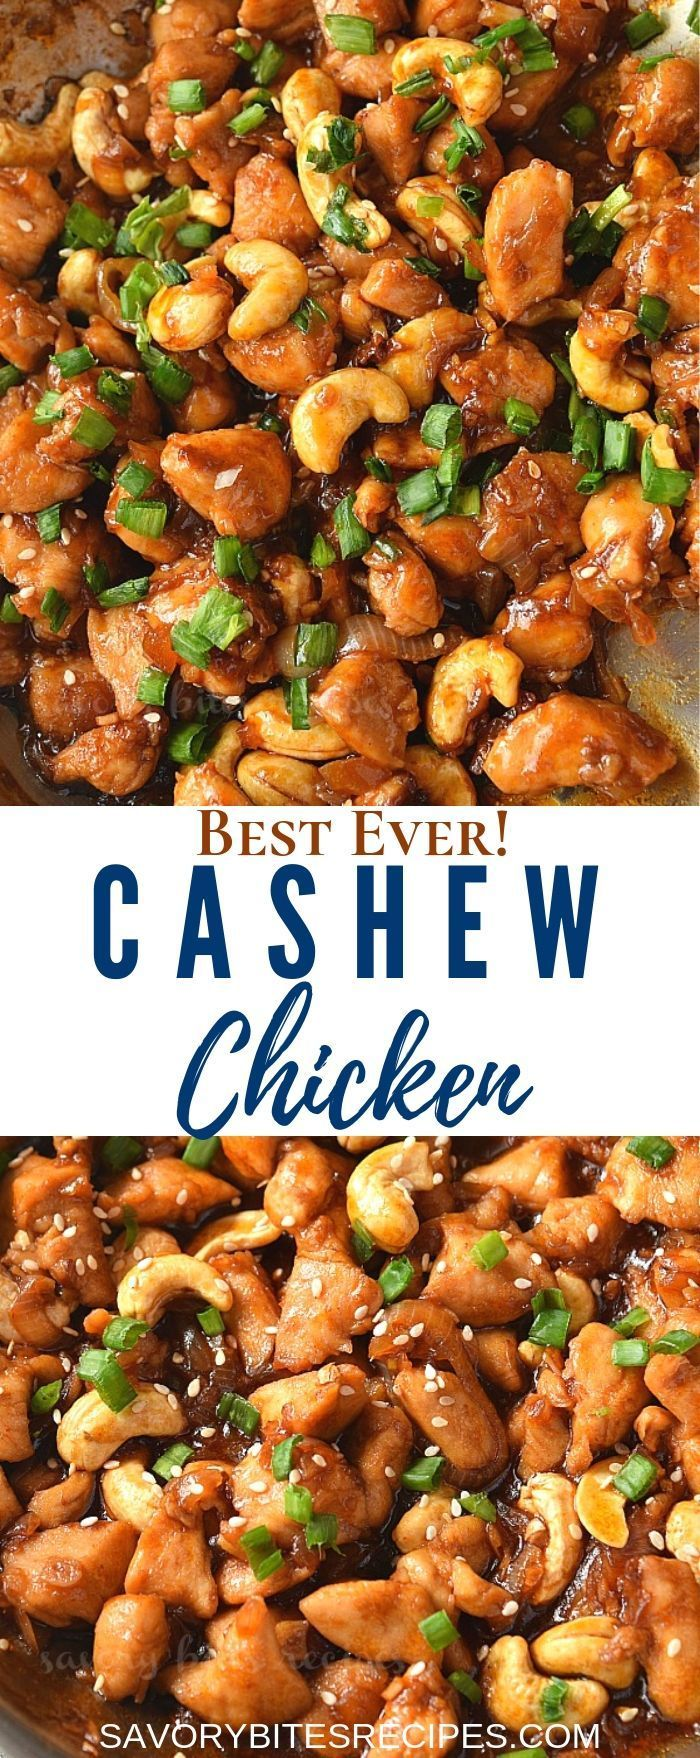 Photo of Try This Ultimate Cashew Chicken Stir Fry